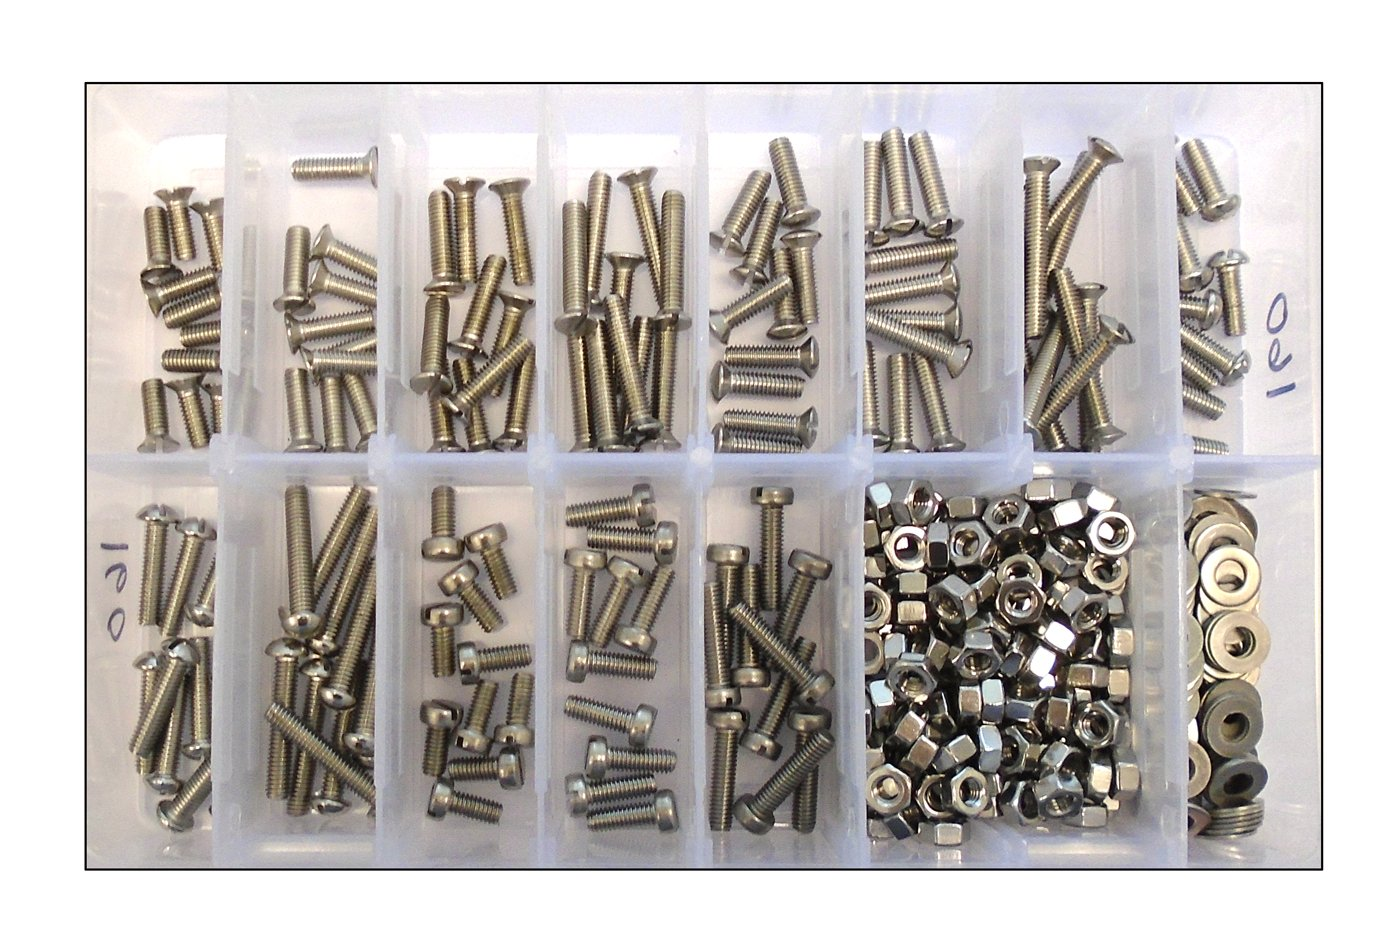 Assorted BA Stainless Steel Machine Screws, Bolts, Nuts & Washers - Refill Pack Generic